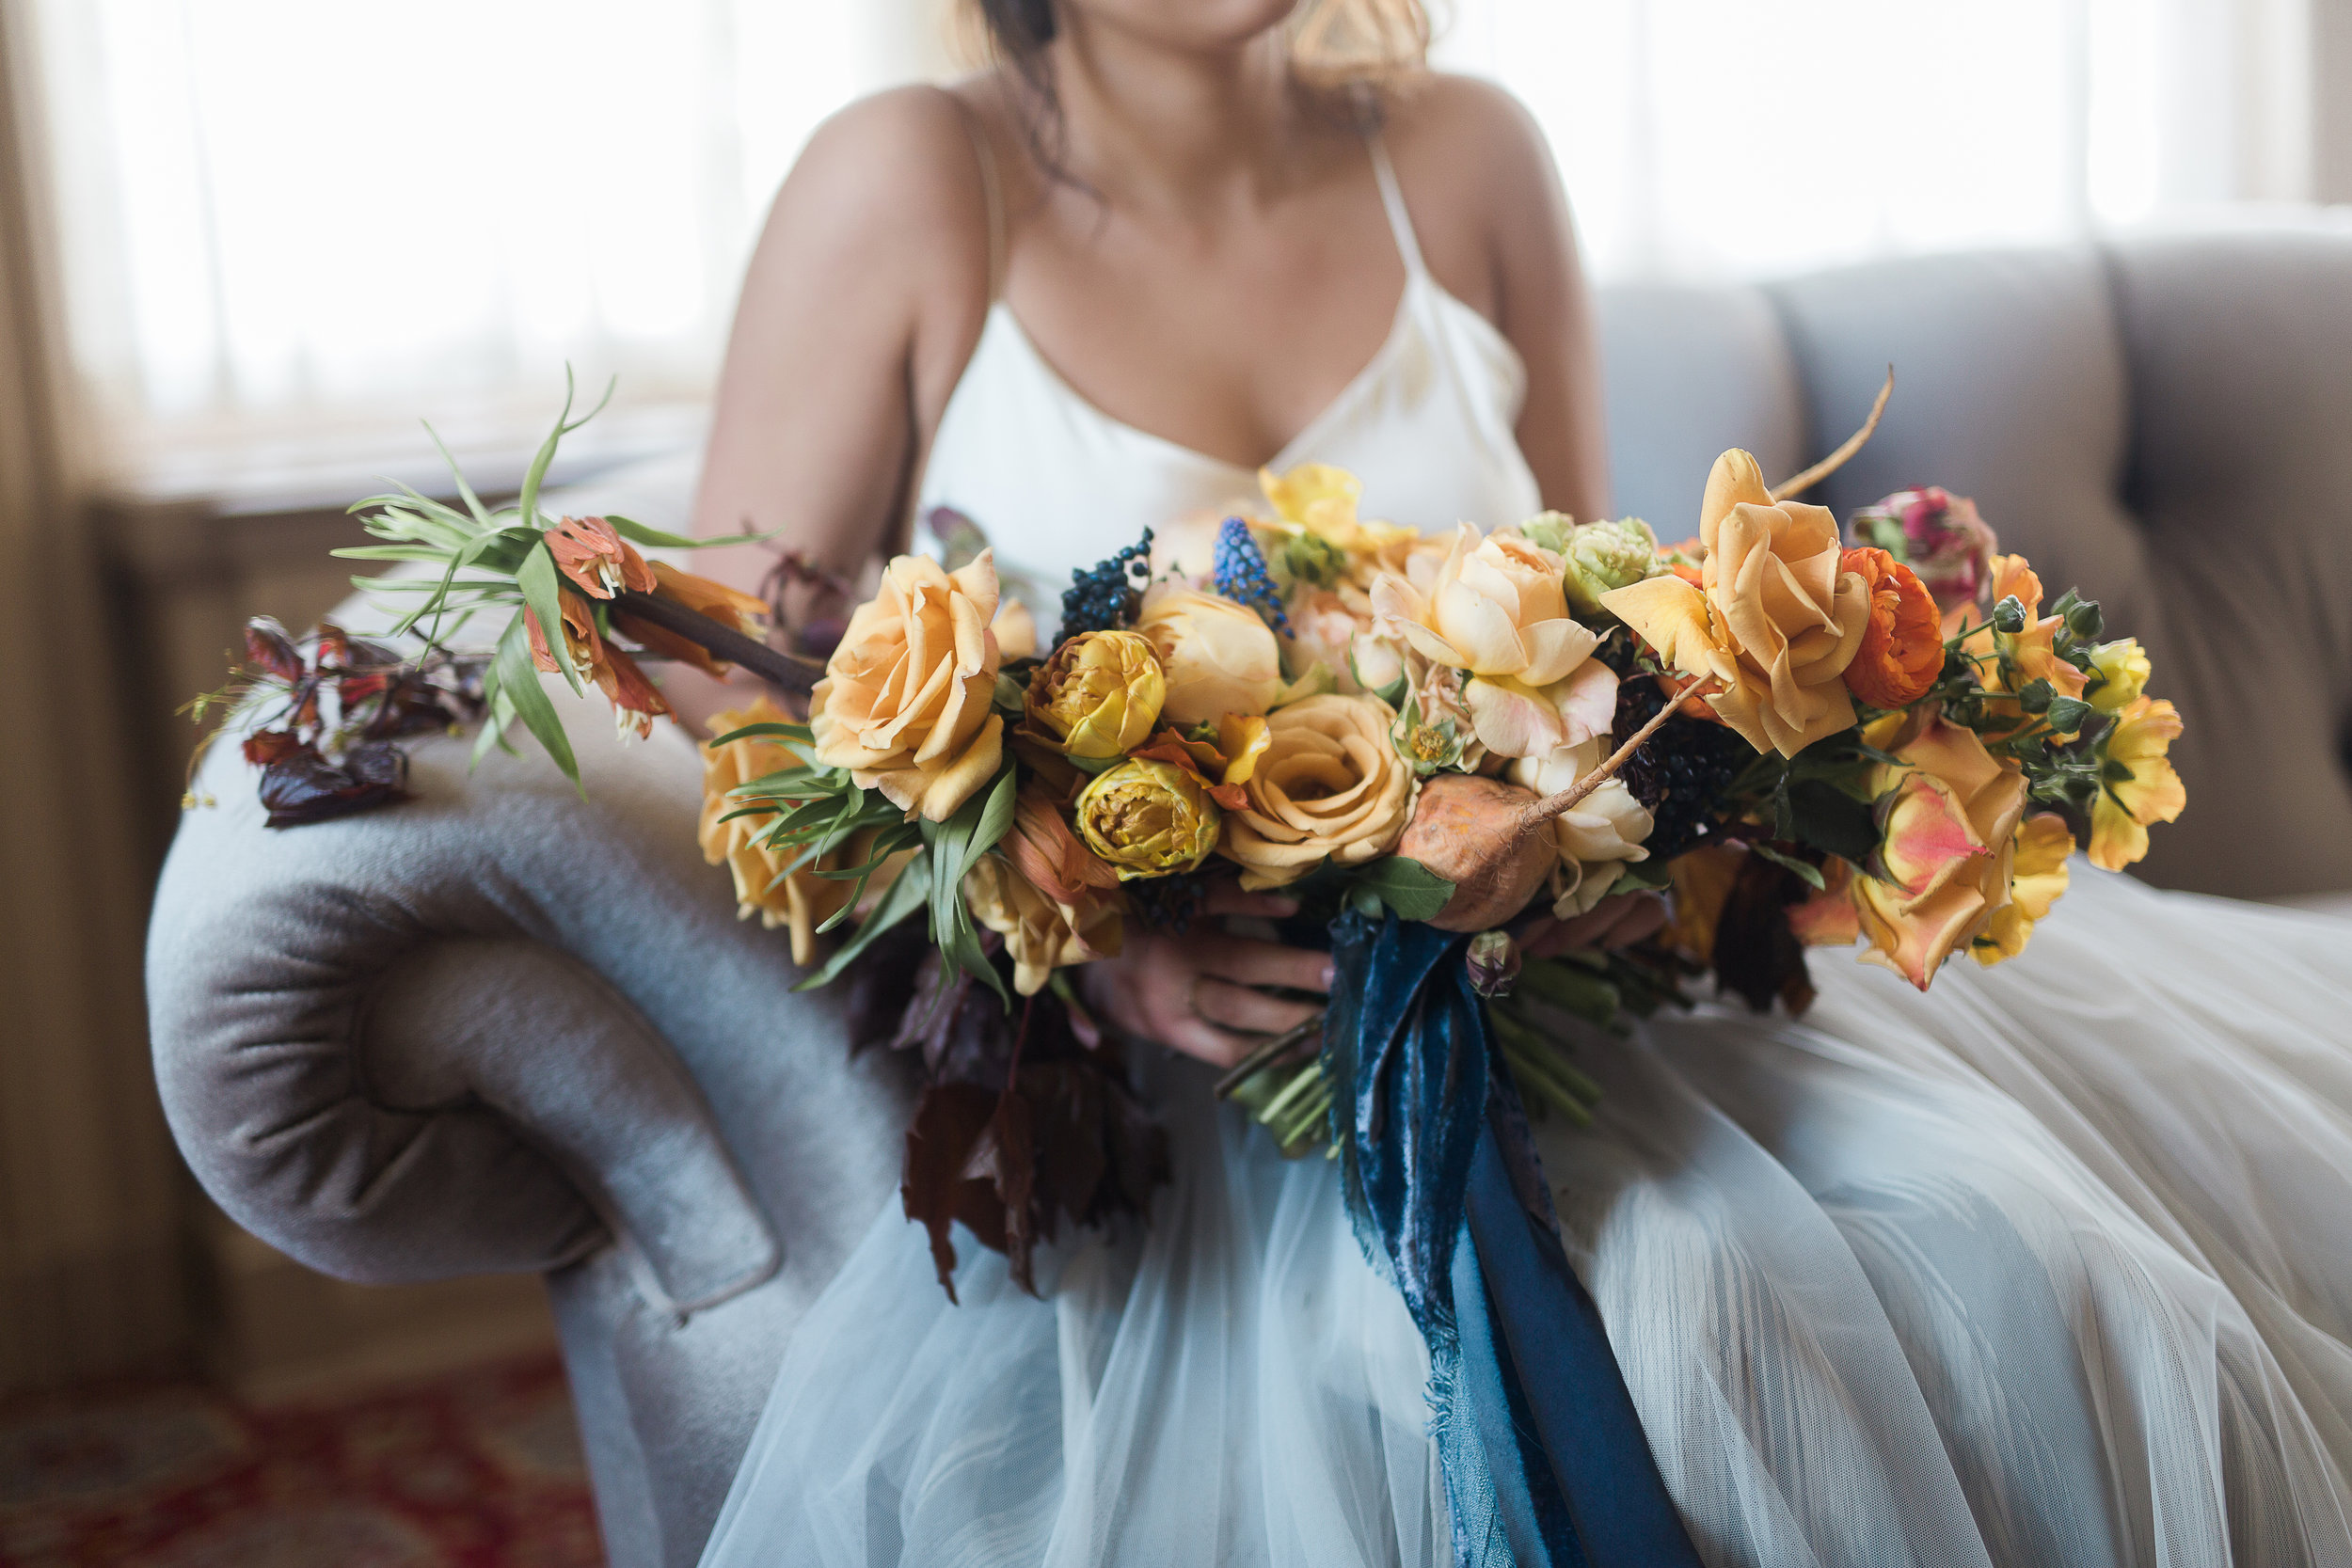 Utah Bride Blog The Potted Pansy Fall Bouquet